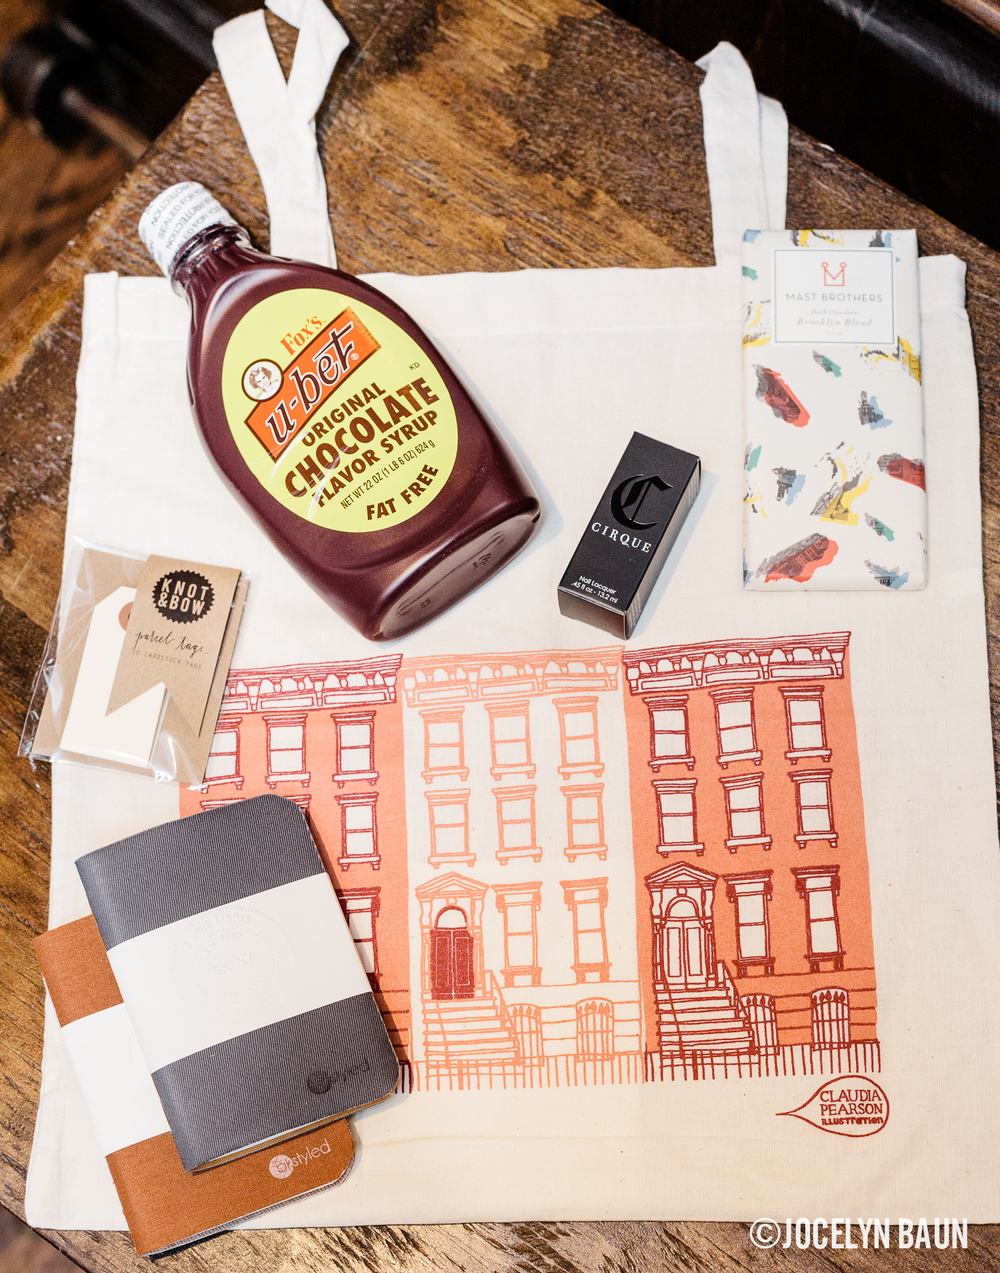 The Claudia Pearson goodie bag included Fox's U-bet chocolate syrup, Cirque nail polish, Knot & Bow parcel tags, a Mast Brothers chocolate bar and a bkstyled fabric notebook.